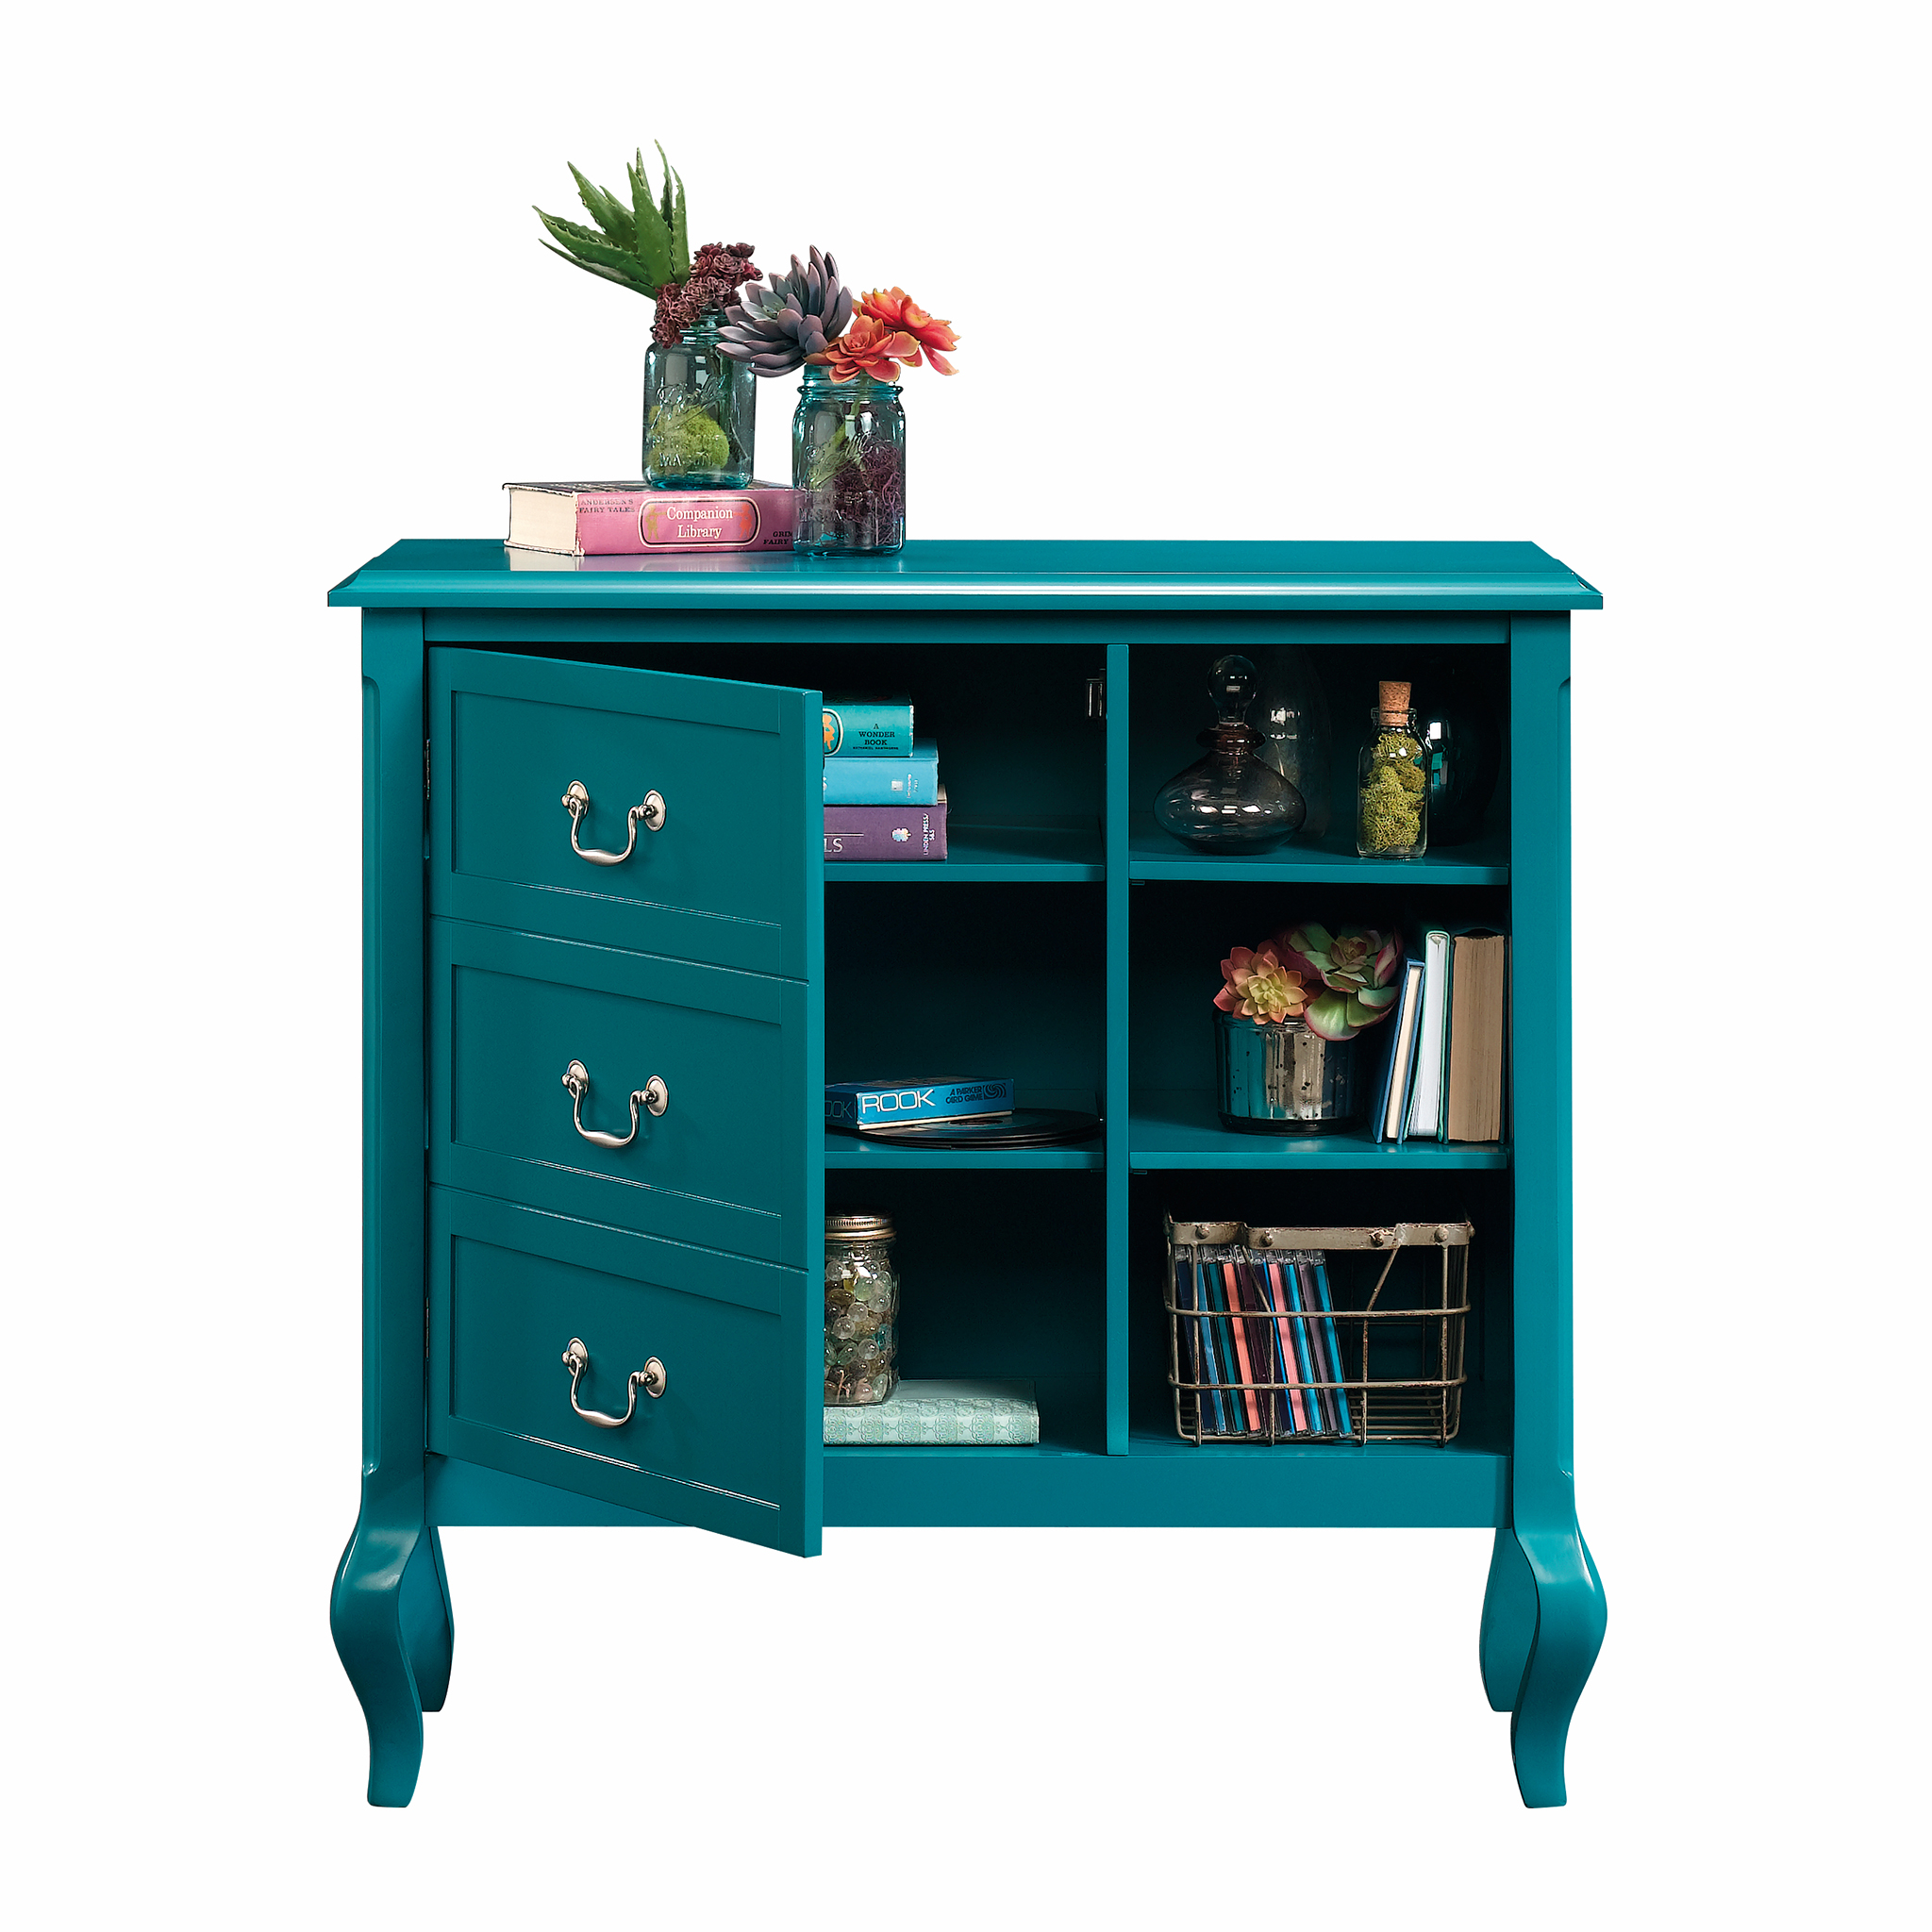 sauder eden rue accent storage cabinet peacock finish furniture pier one tables small kitchen counter lamps victorian console table bronze patio side oval garden covers sea themed